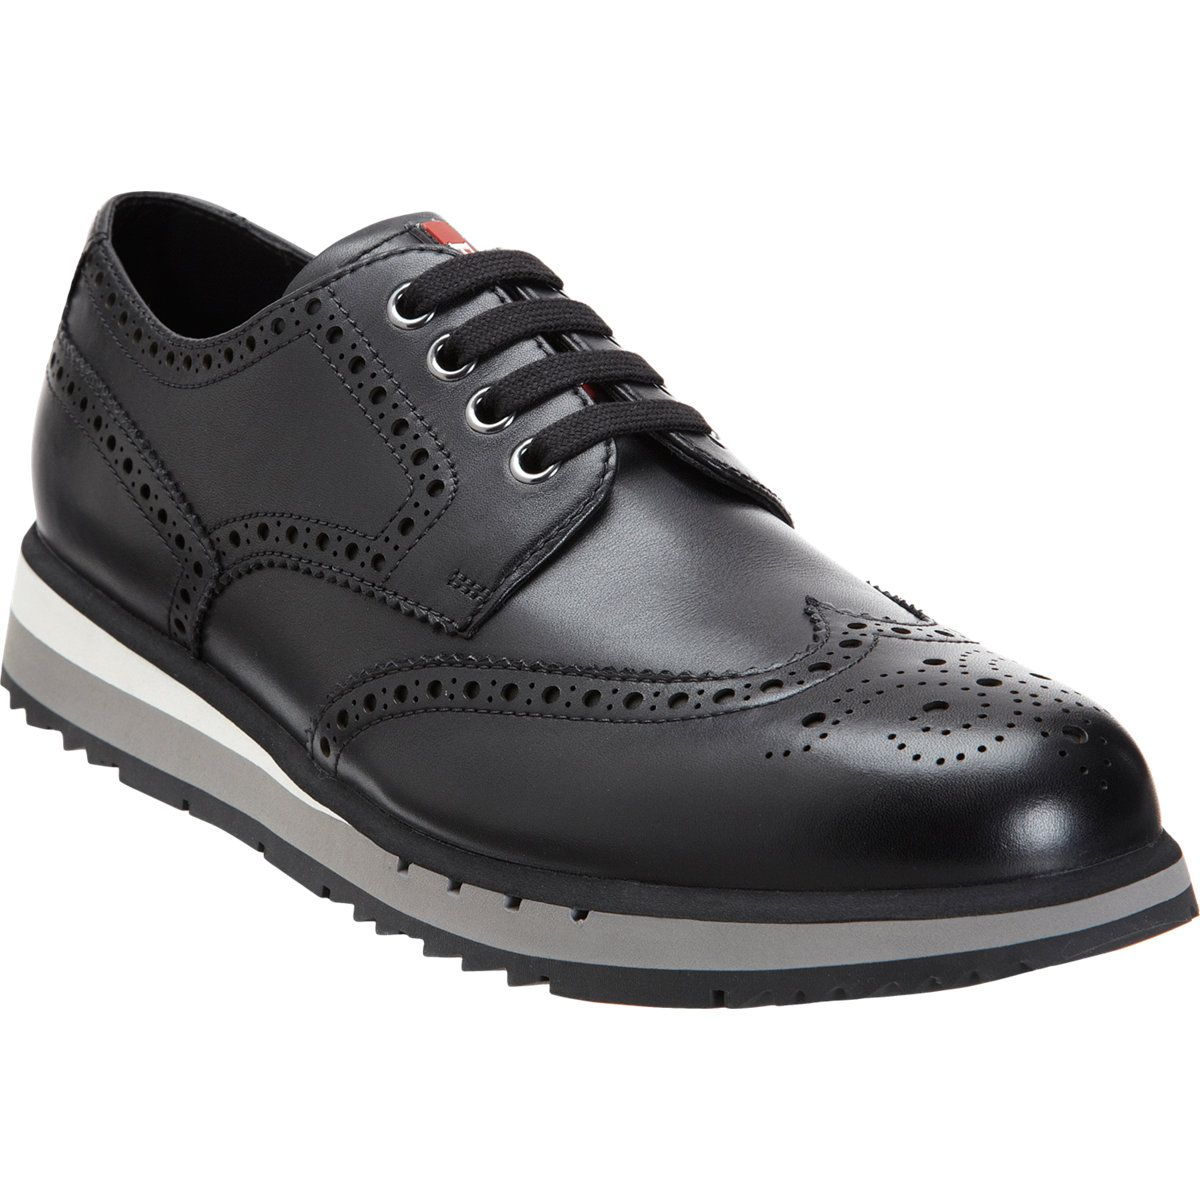 Prada Wingtip Sneaker at Barneys.com